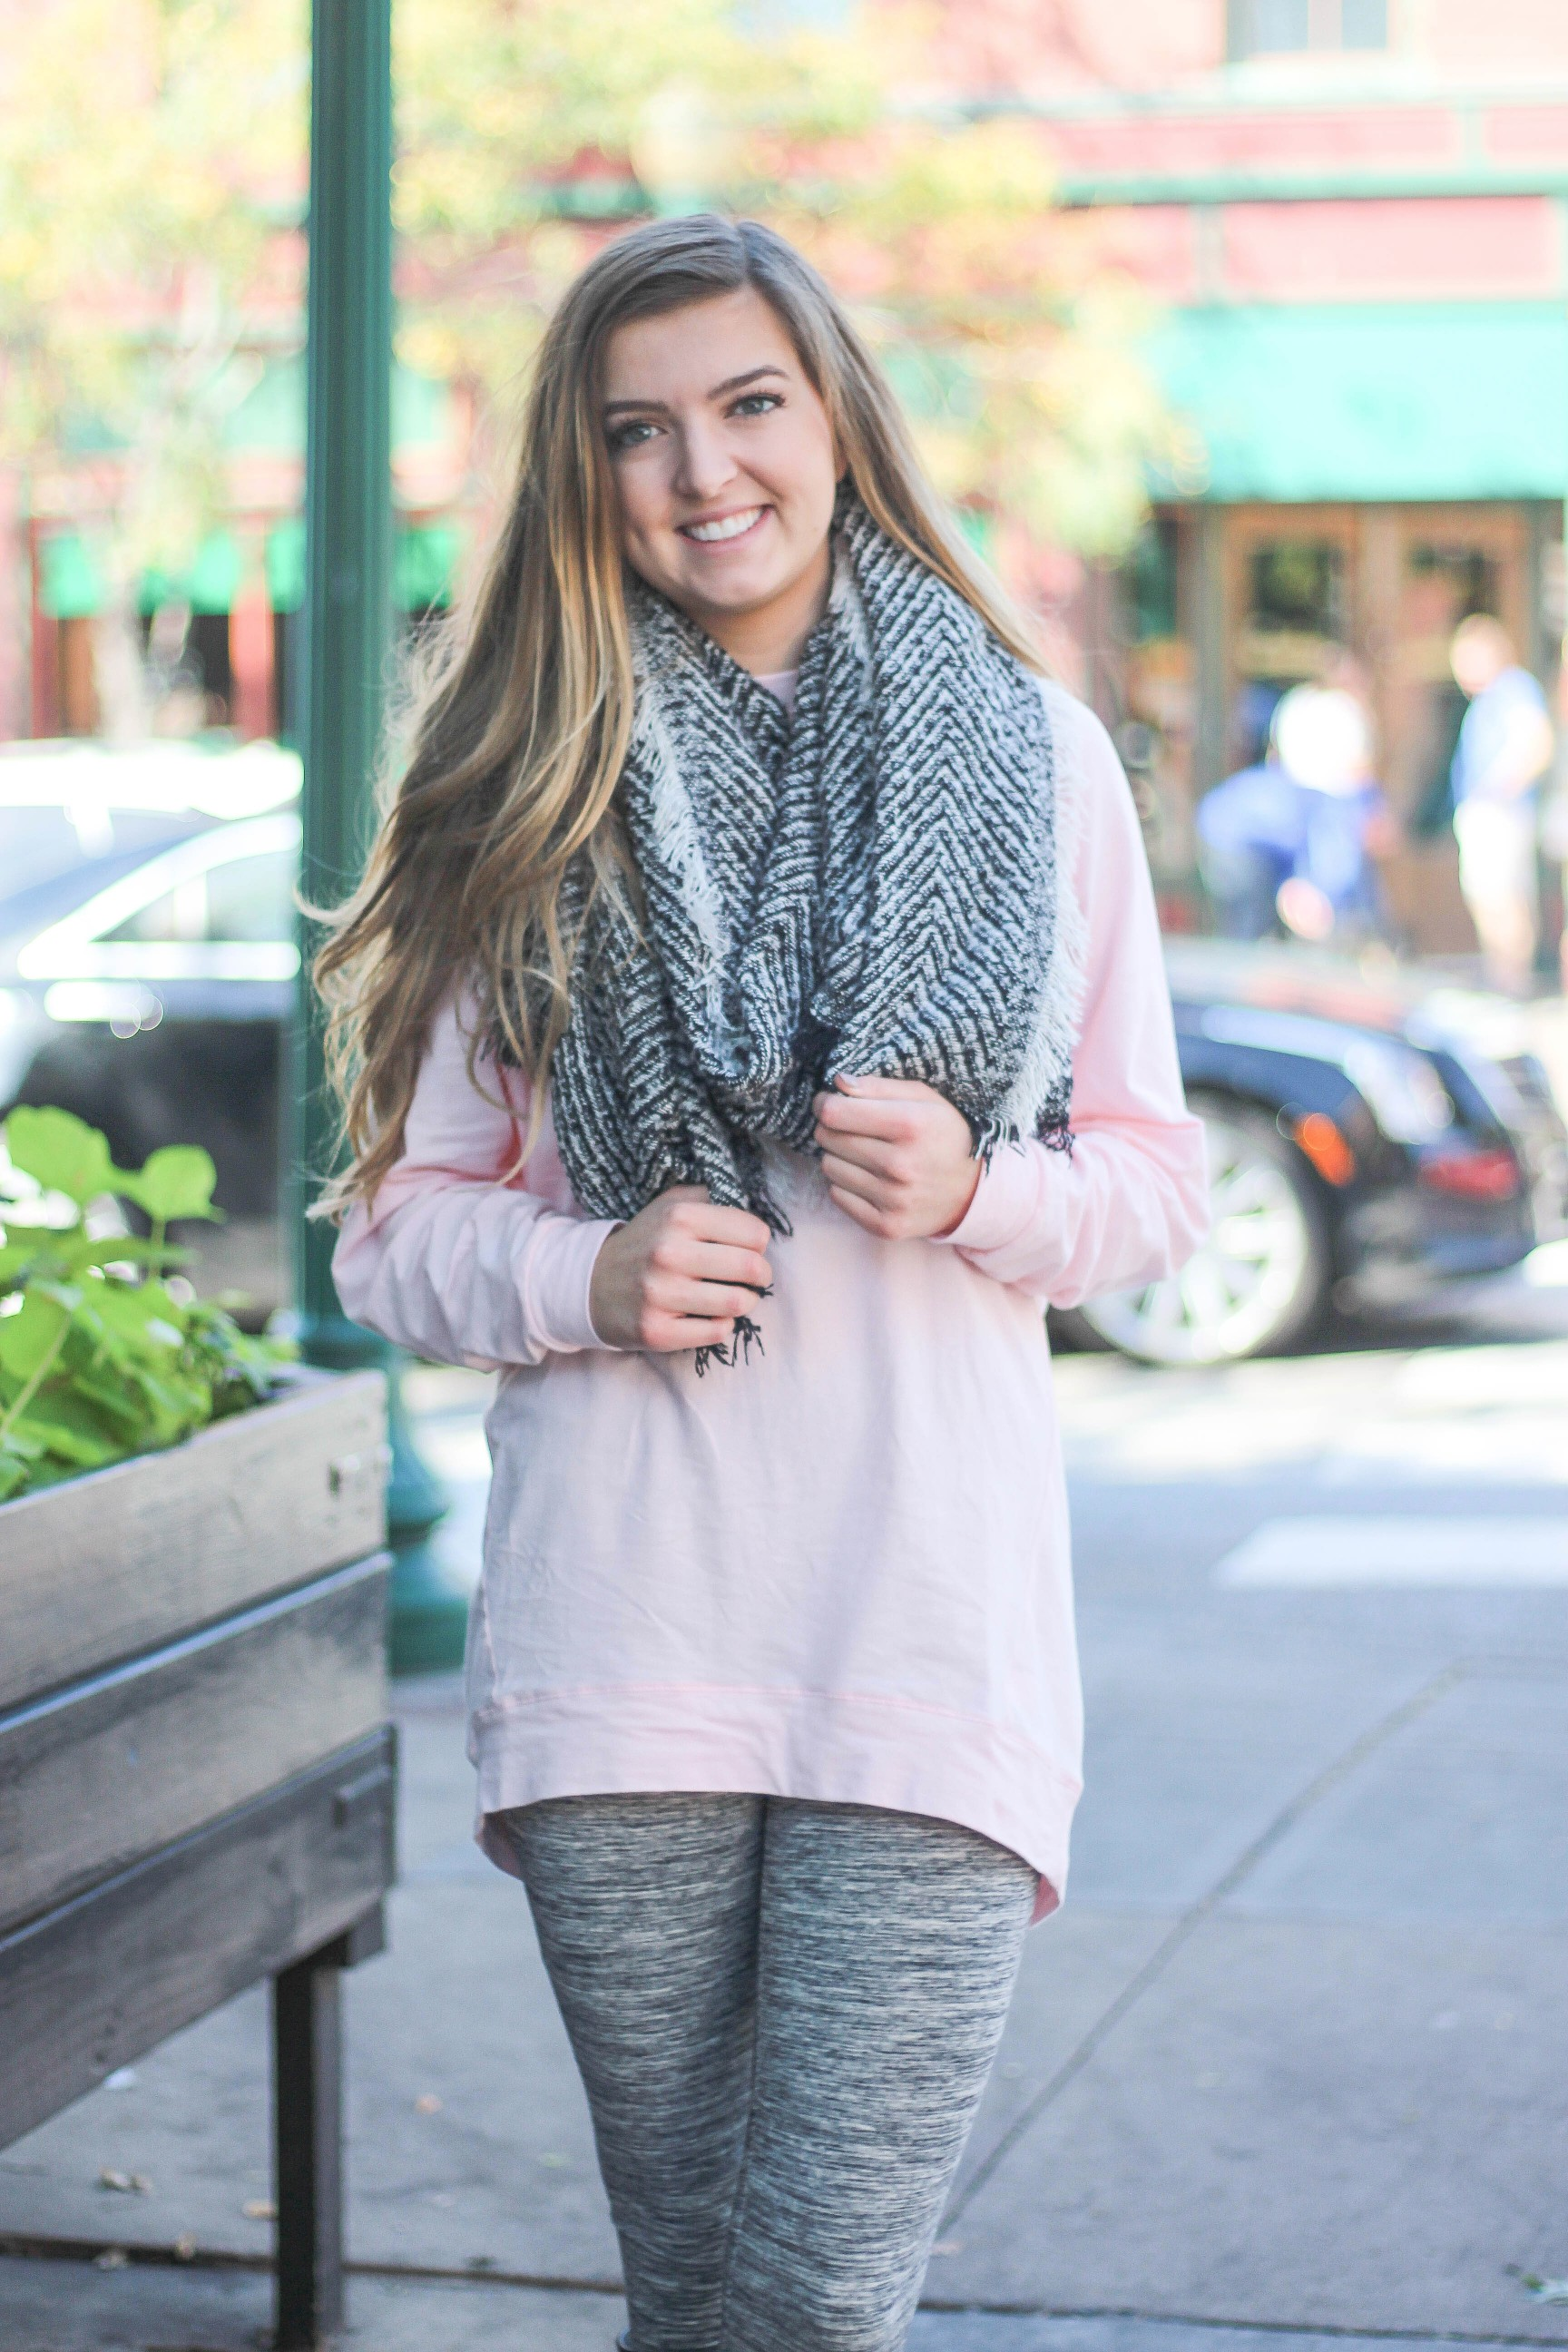 Purchase this Mint Julep slouchy top exclusively on my blog by dailydoseofcharm.com daily dose of charm lauren lindmark